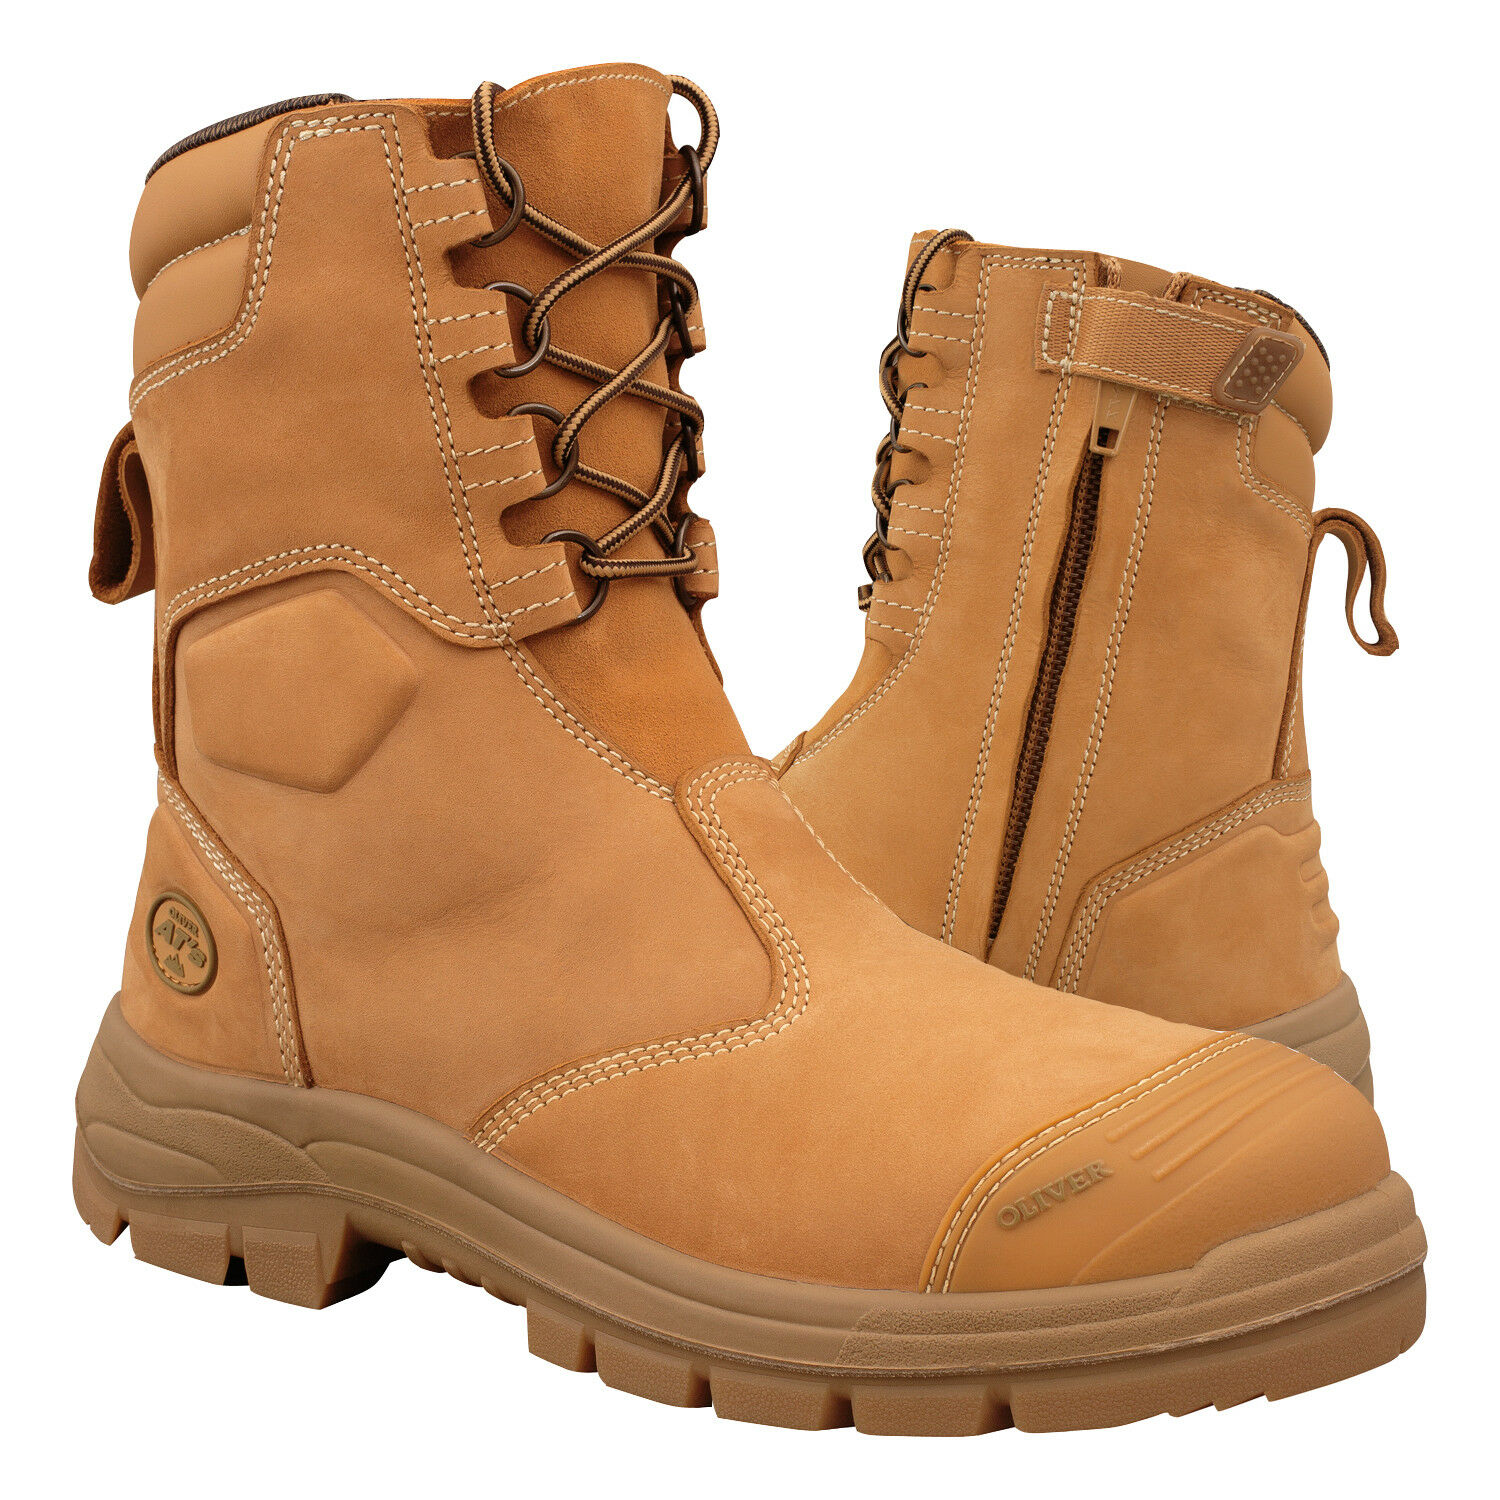 Details about New Oliver Men s Work Safety Boots Steel Toe ZIP High Leg  Mining Shoes 55385 078349ac705f